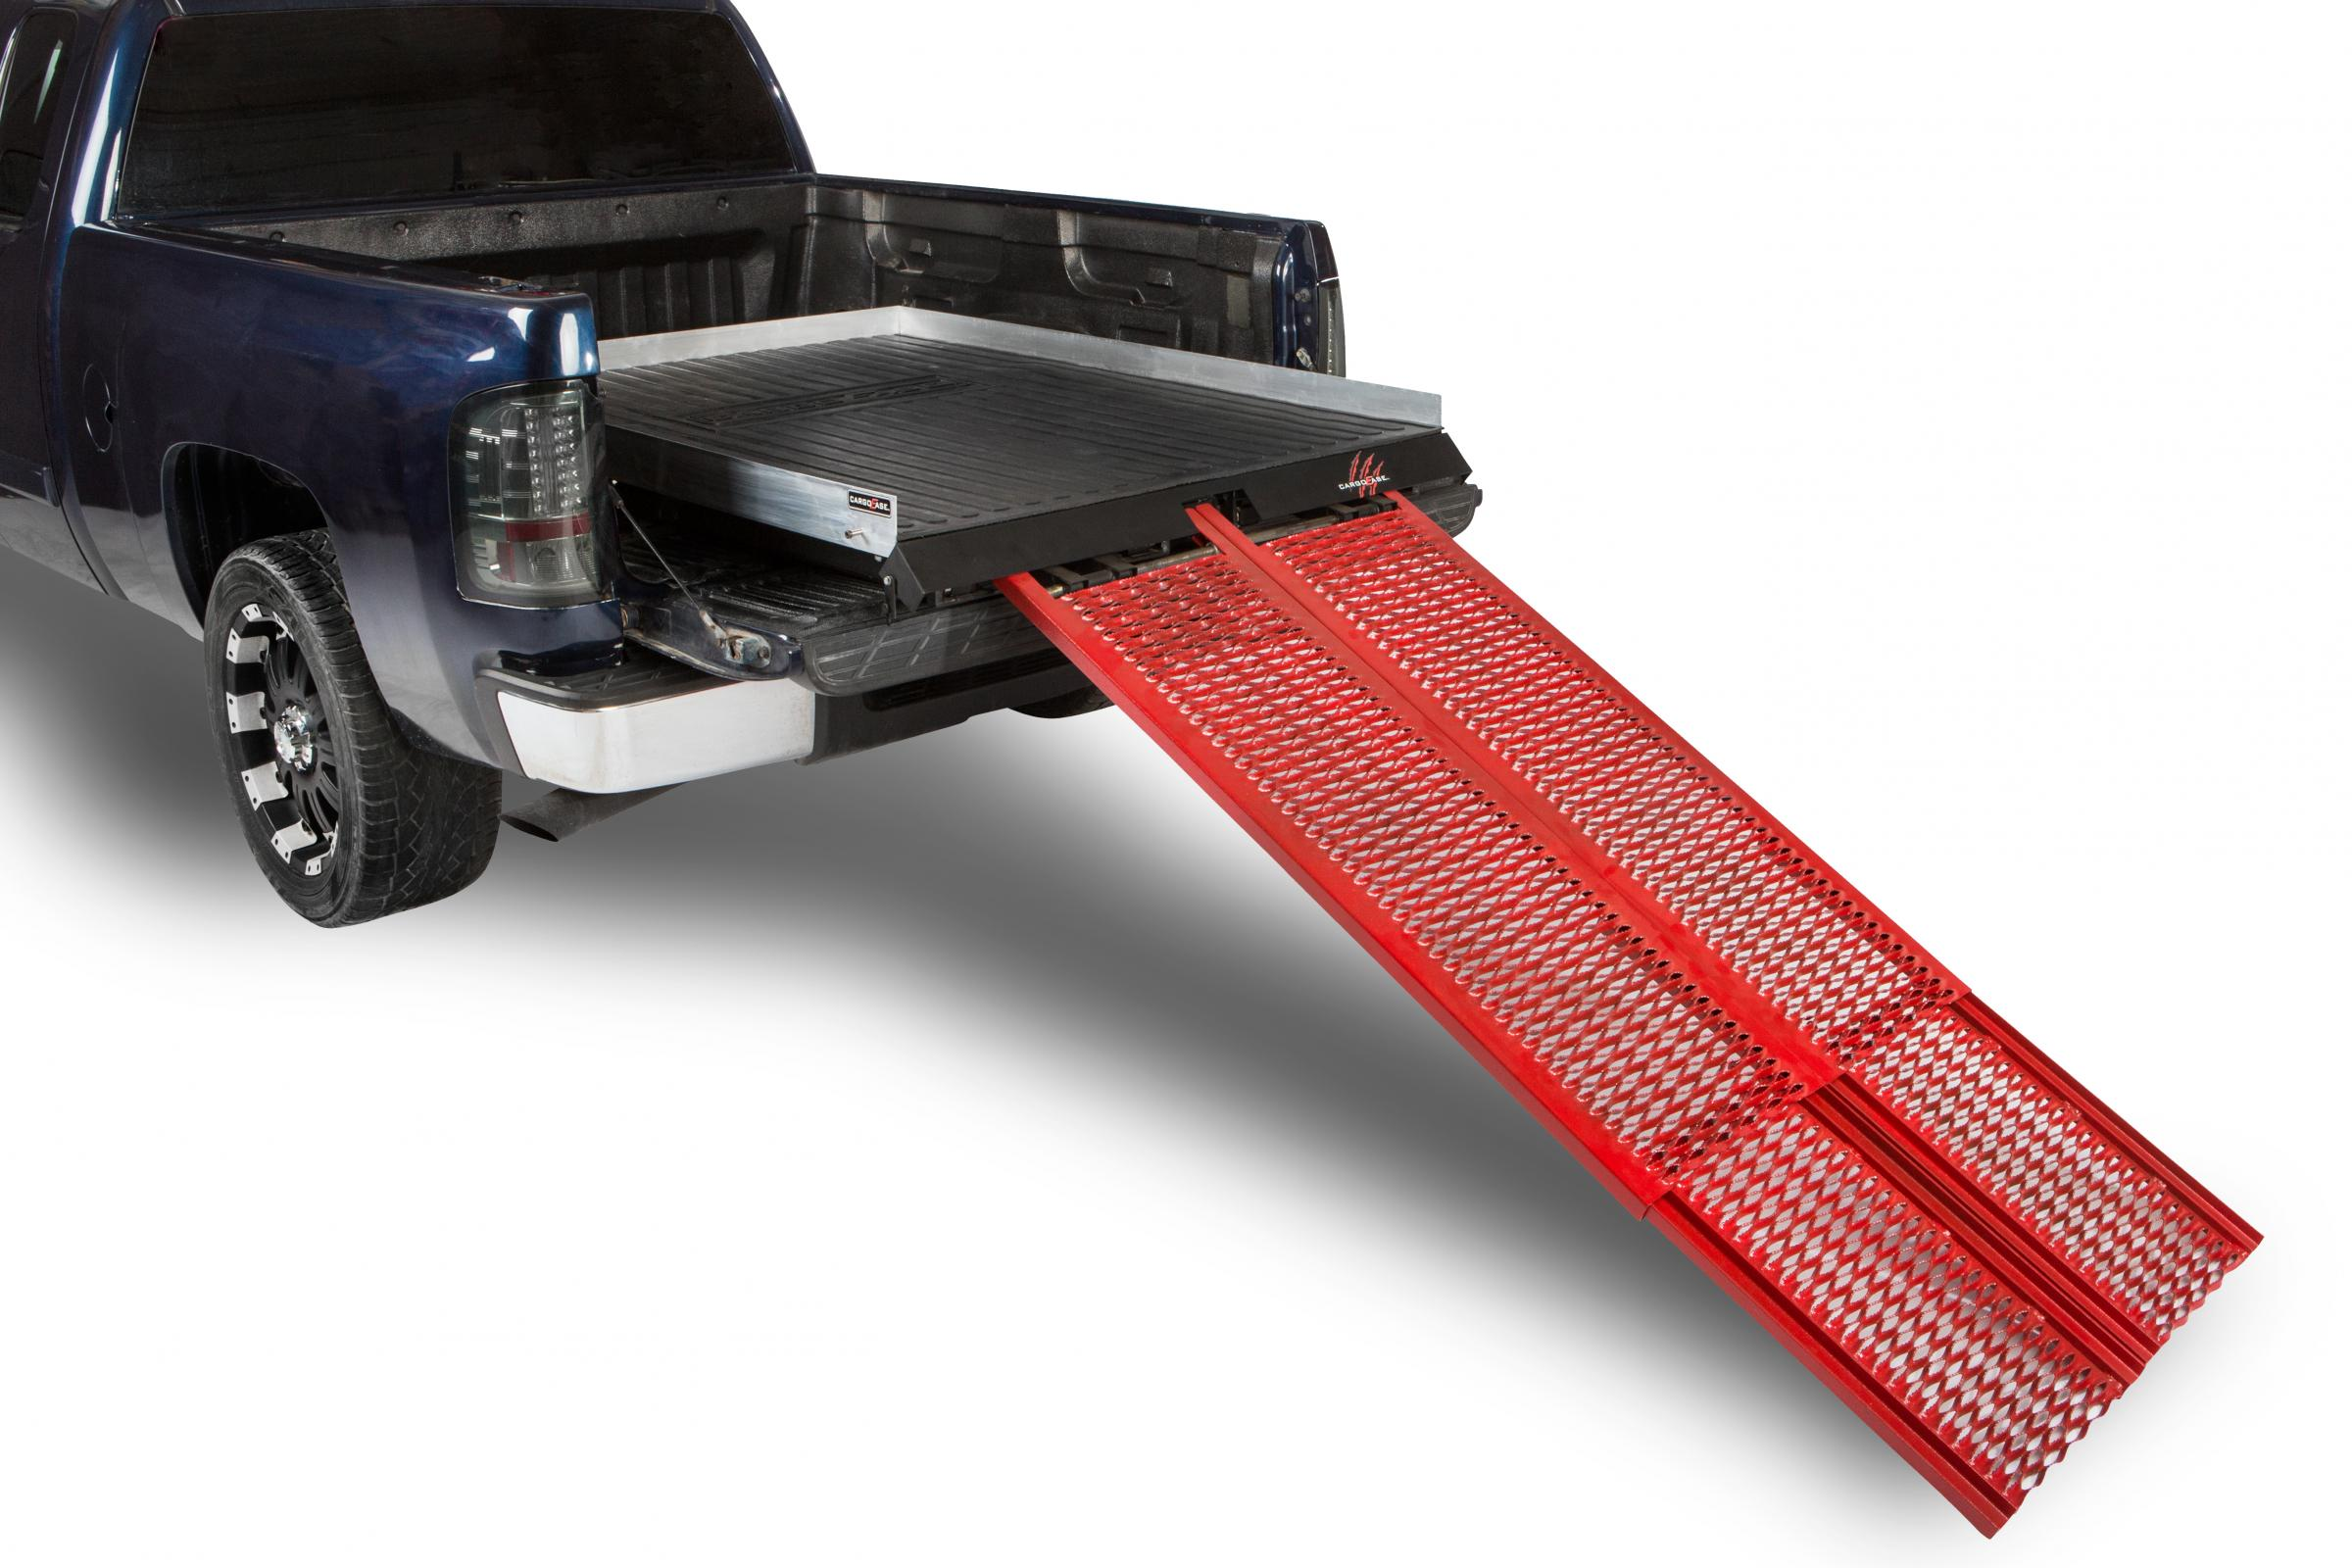 Cargo Ease Cargo Ramp Series Bed Slide 1800 Lb Capacity 03-Pres Toyota Tacoma Double Cab Short Bed